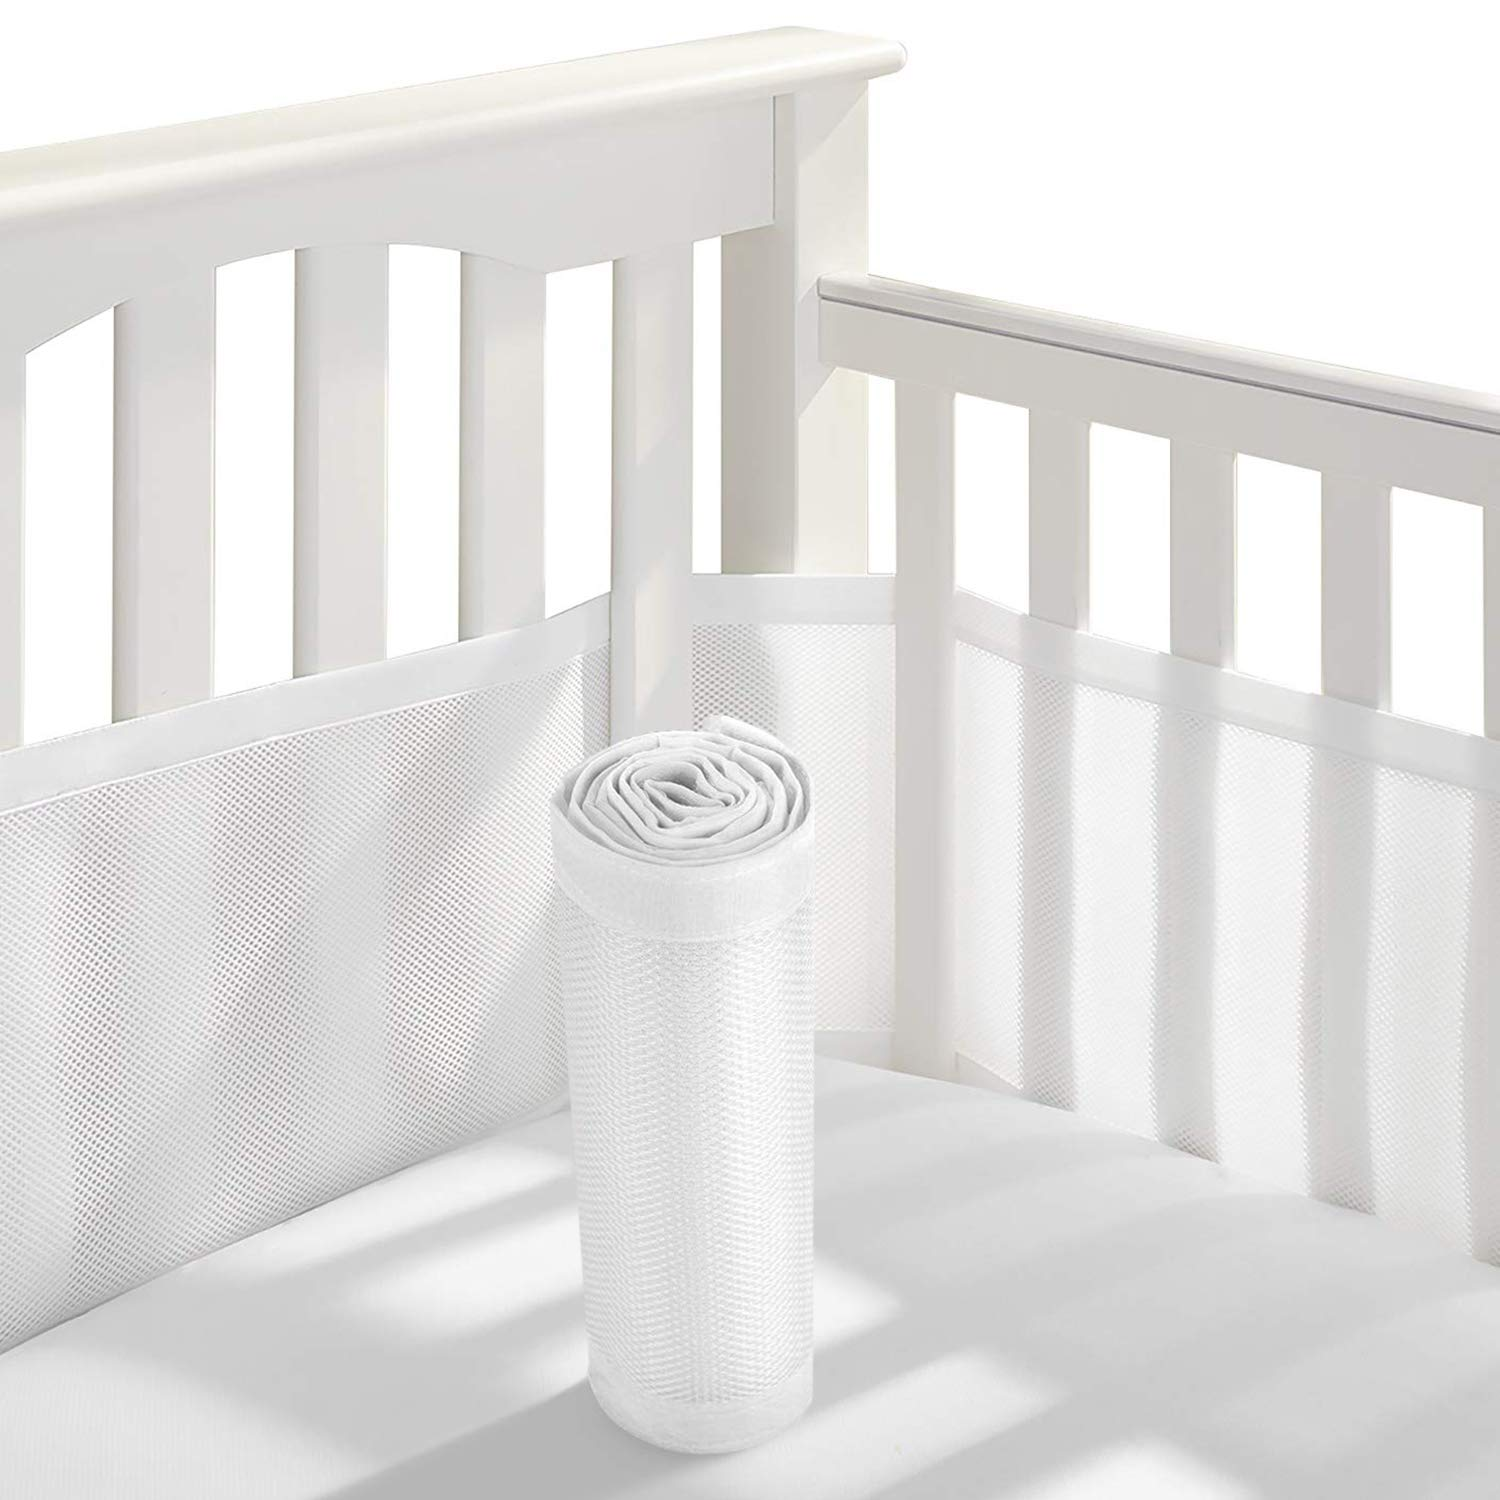 Baby Crib Bumper,Classic Breathable Mesh Crib Liner,2 Pieces/Set (White) by Wooce